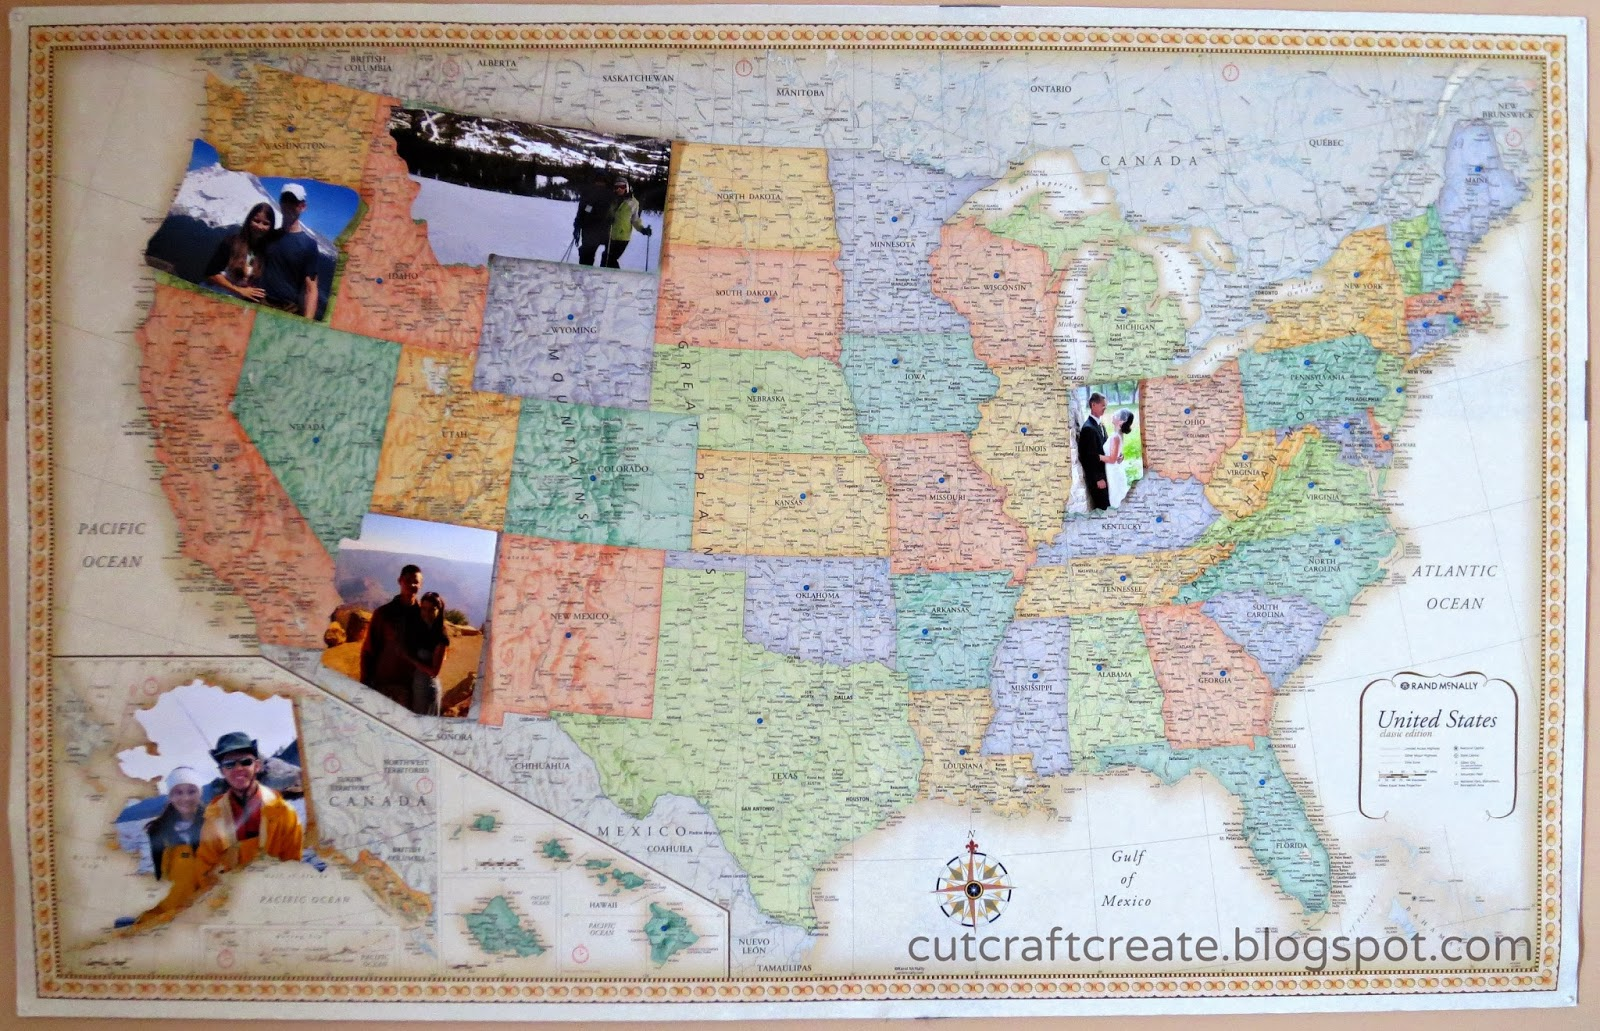 Cut Craft Create Personalized Photo Map For Our Paper Anniversary - Framed us map